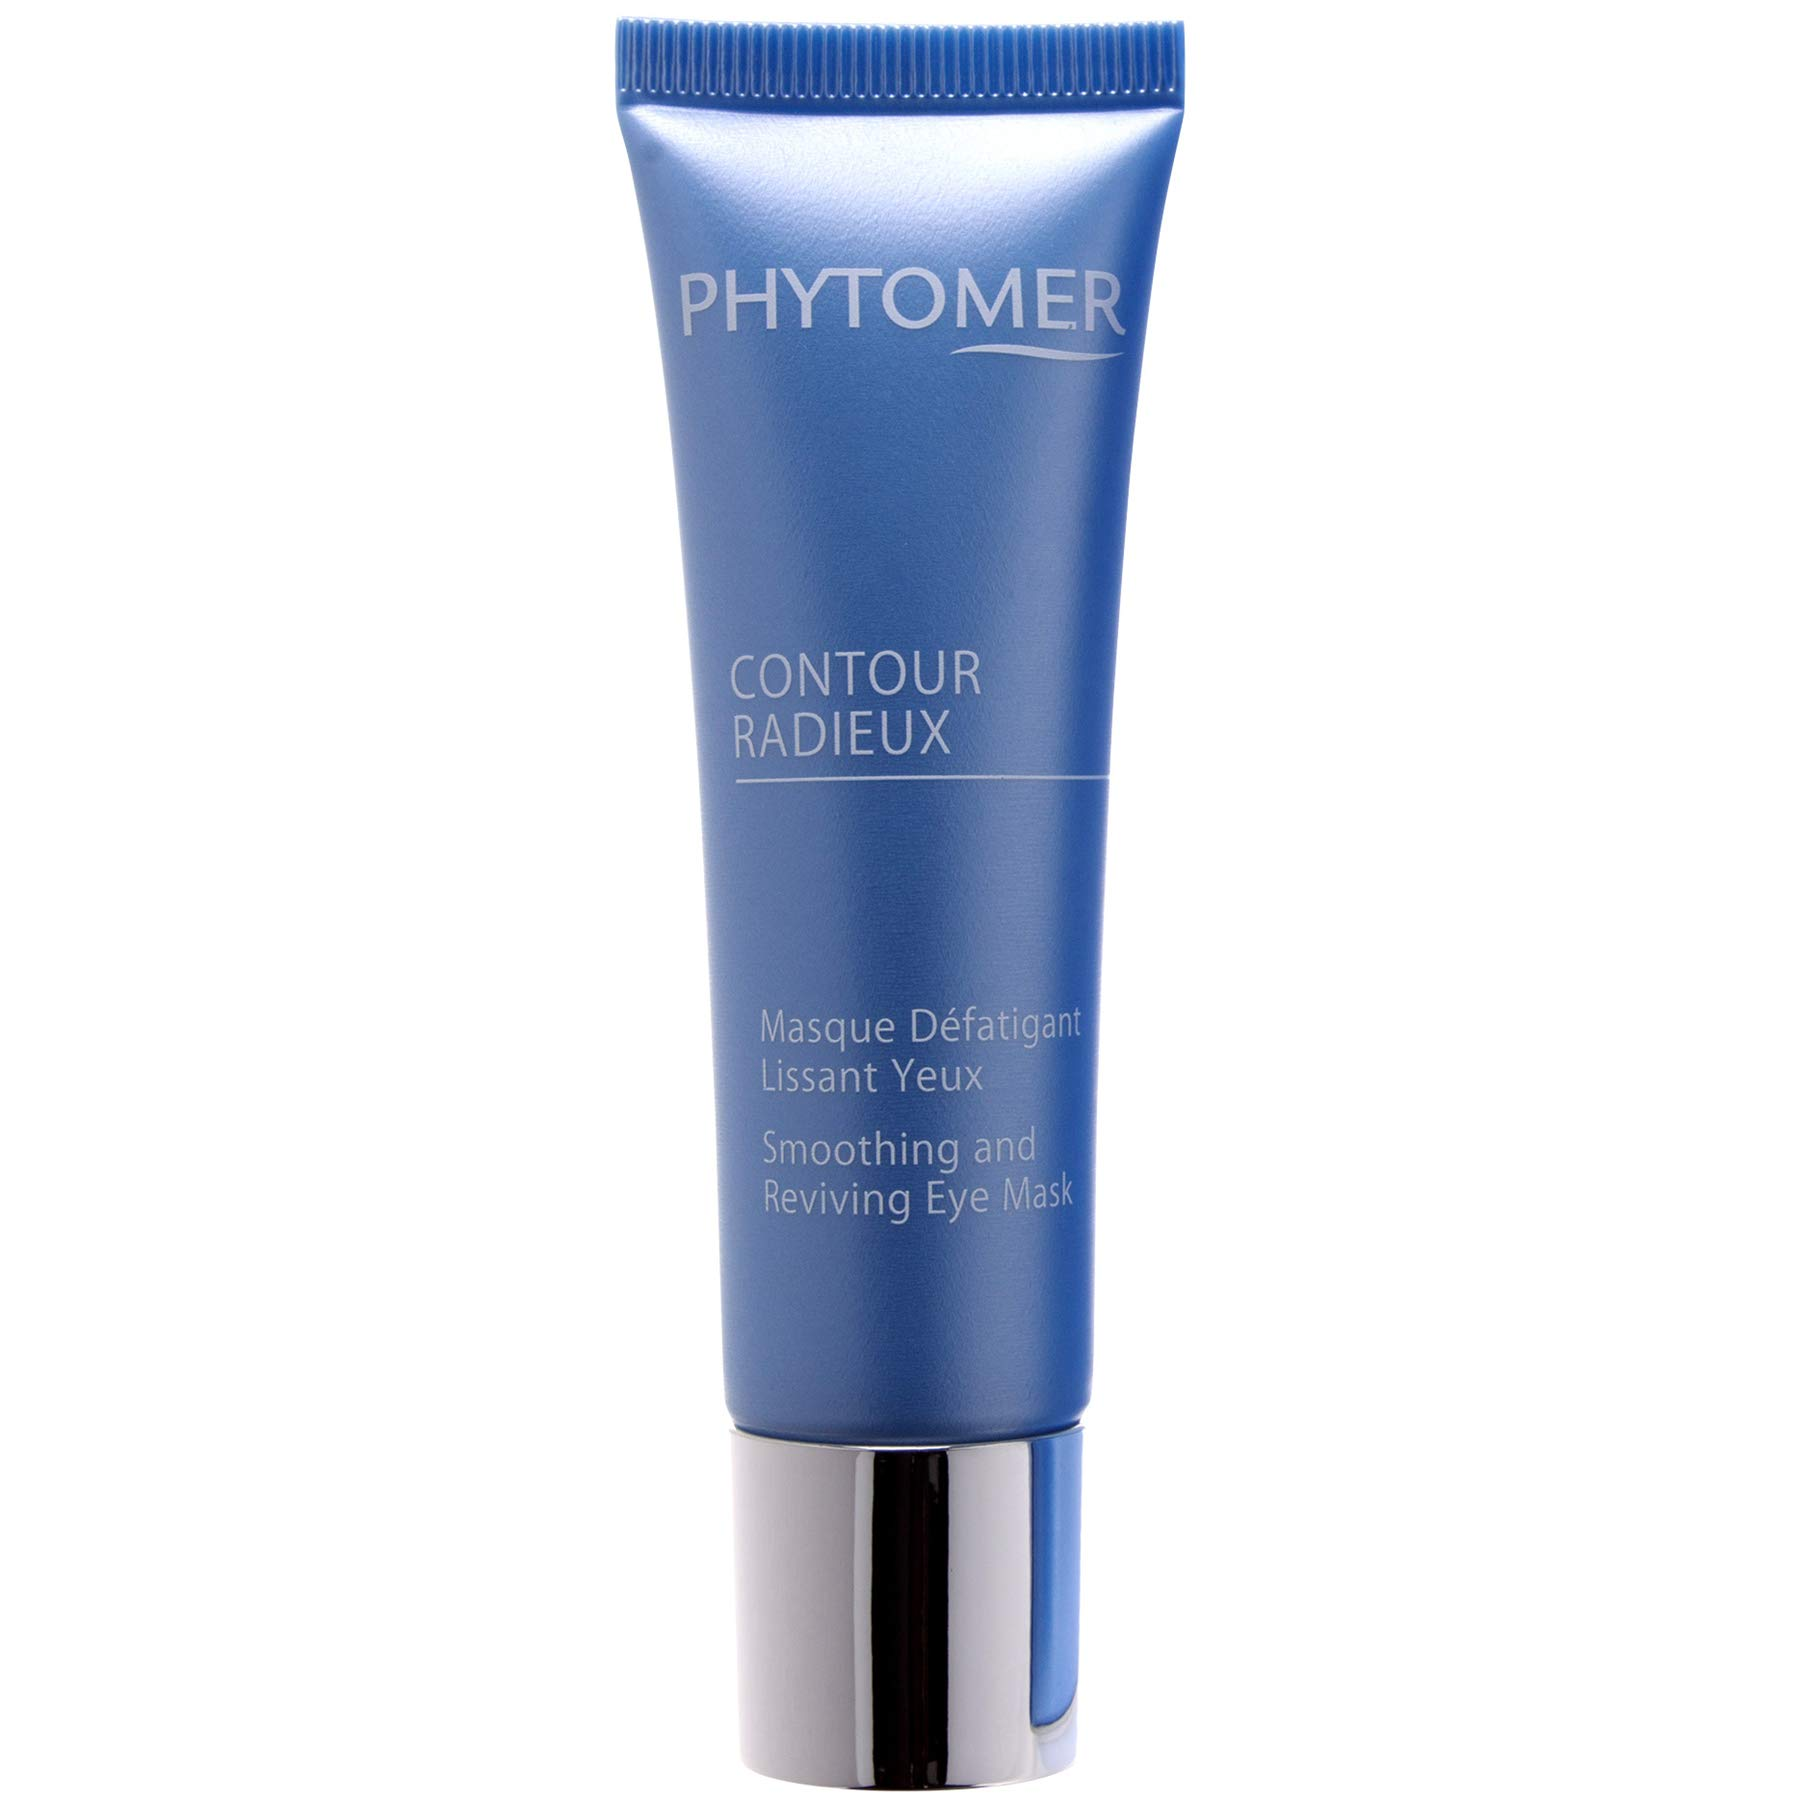 Phytomer Contour Radieux Smoothing and Reviving Eye Mask 1 Ounce